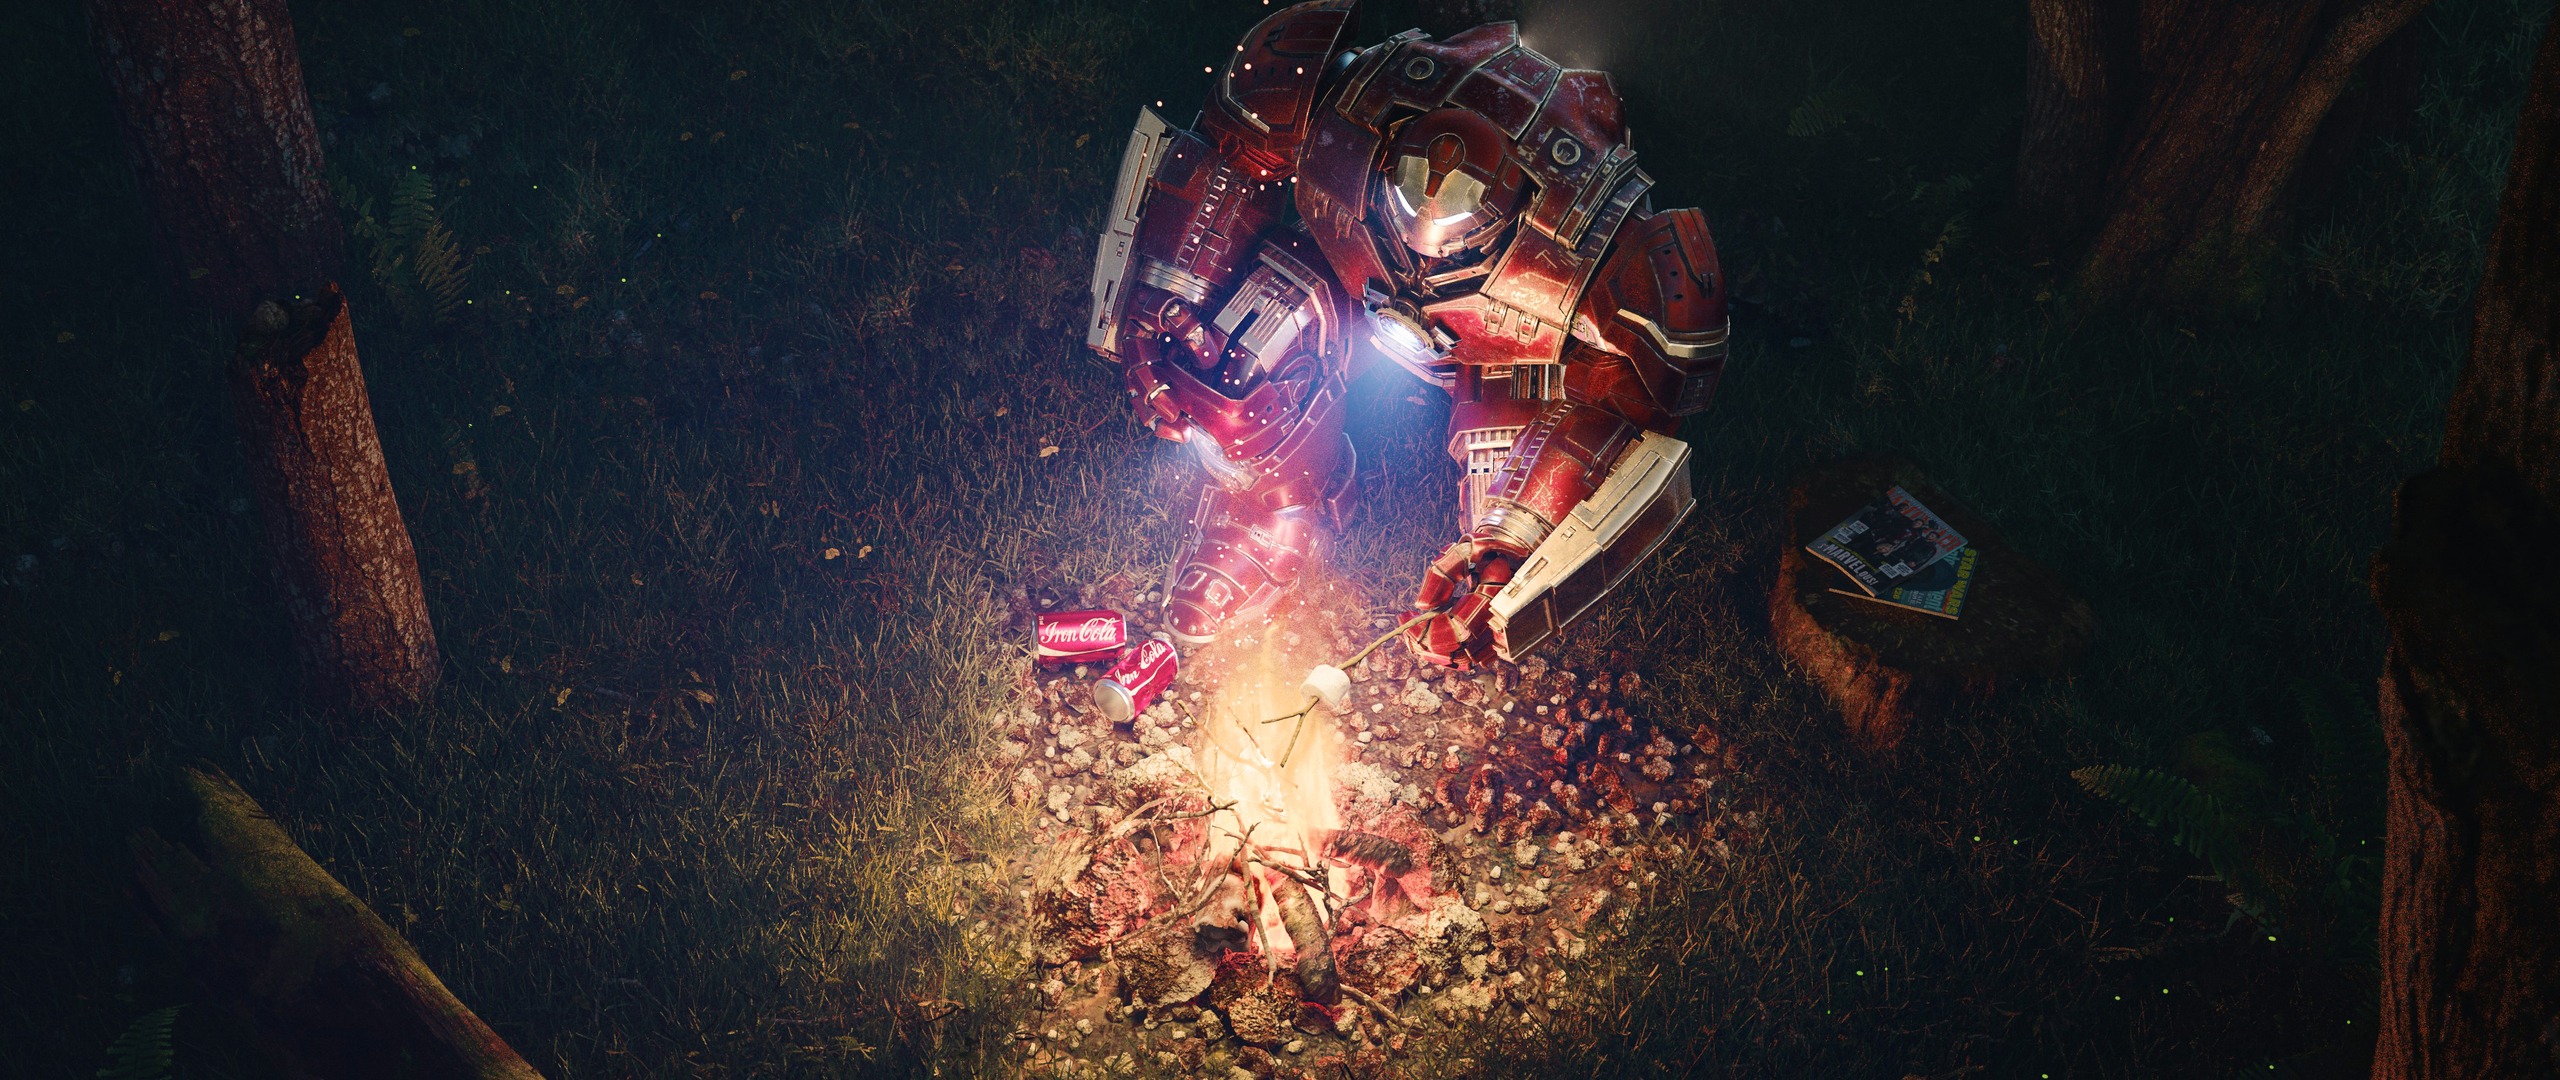 hulkbuster-in-jungle-ol.jpg